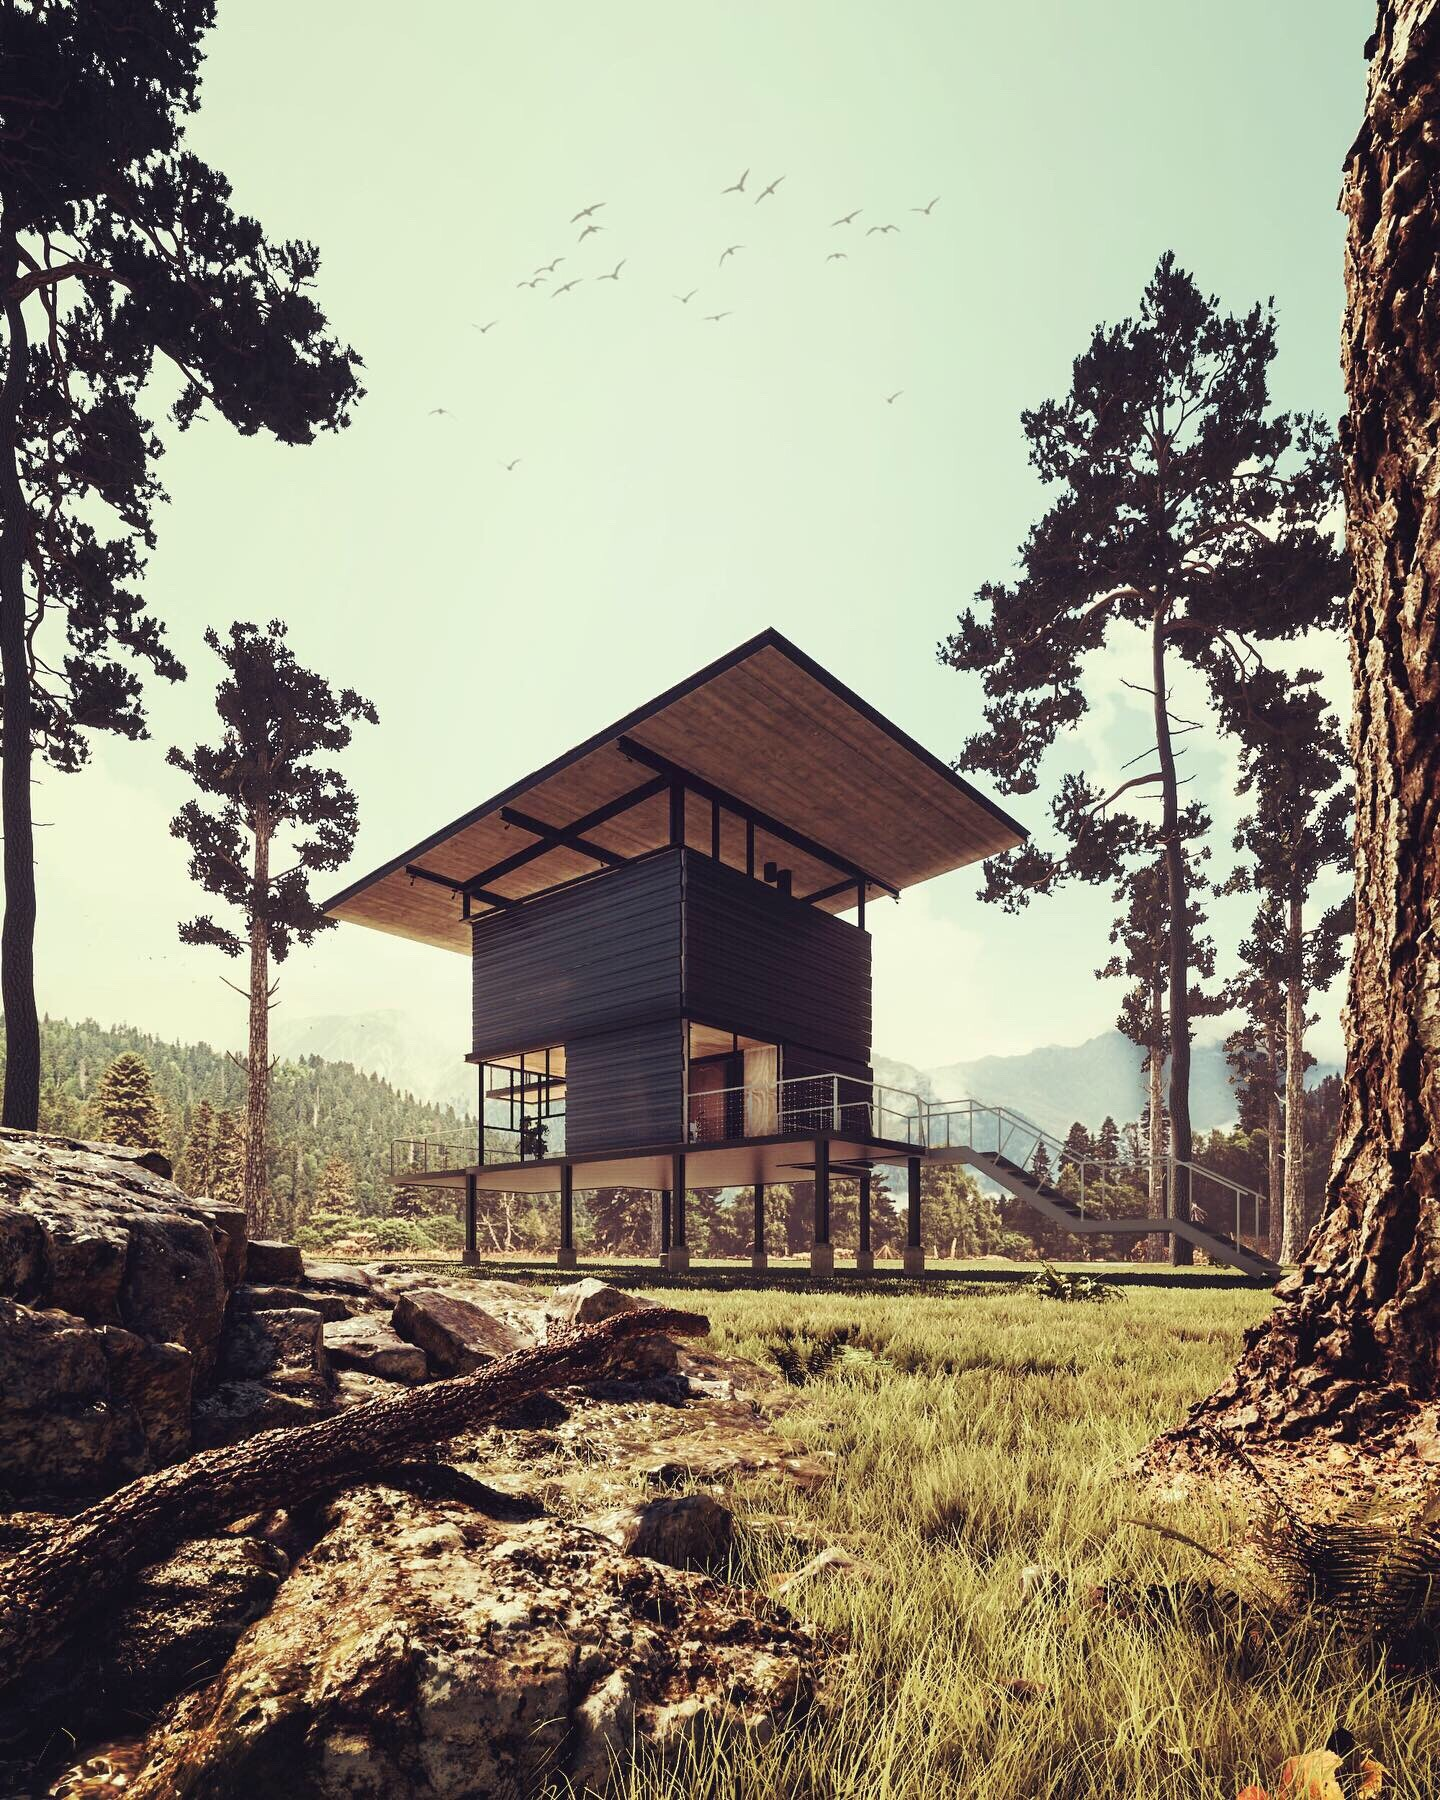 ArtStation - My final visualization, modern house in forest